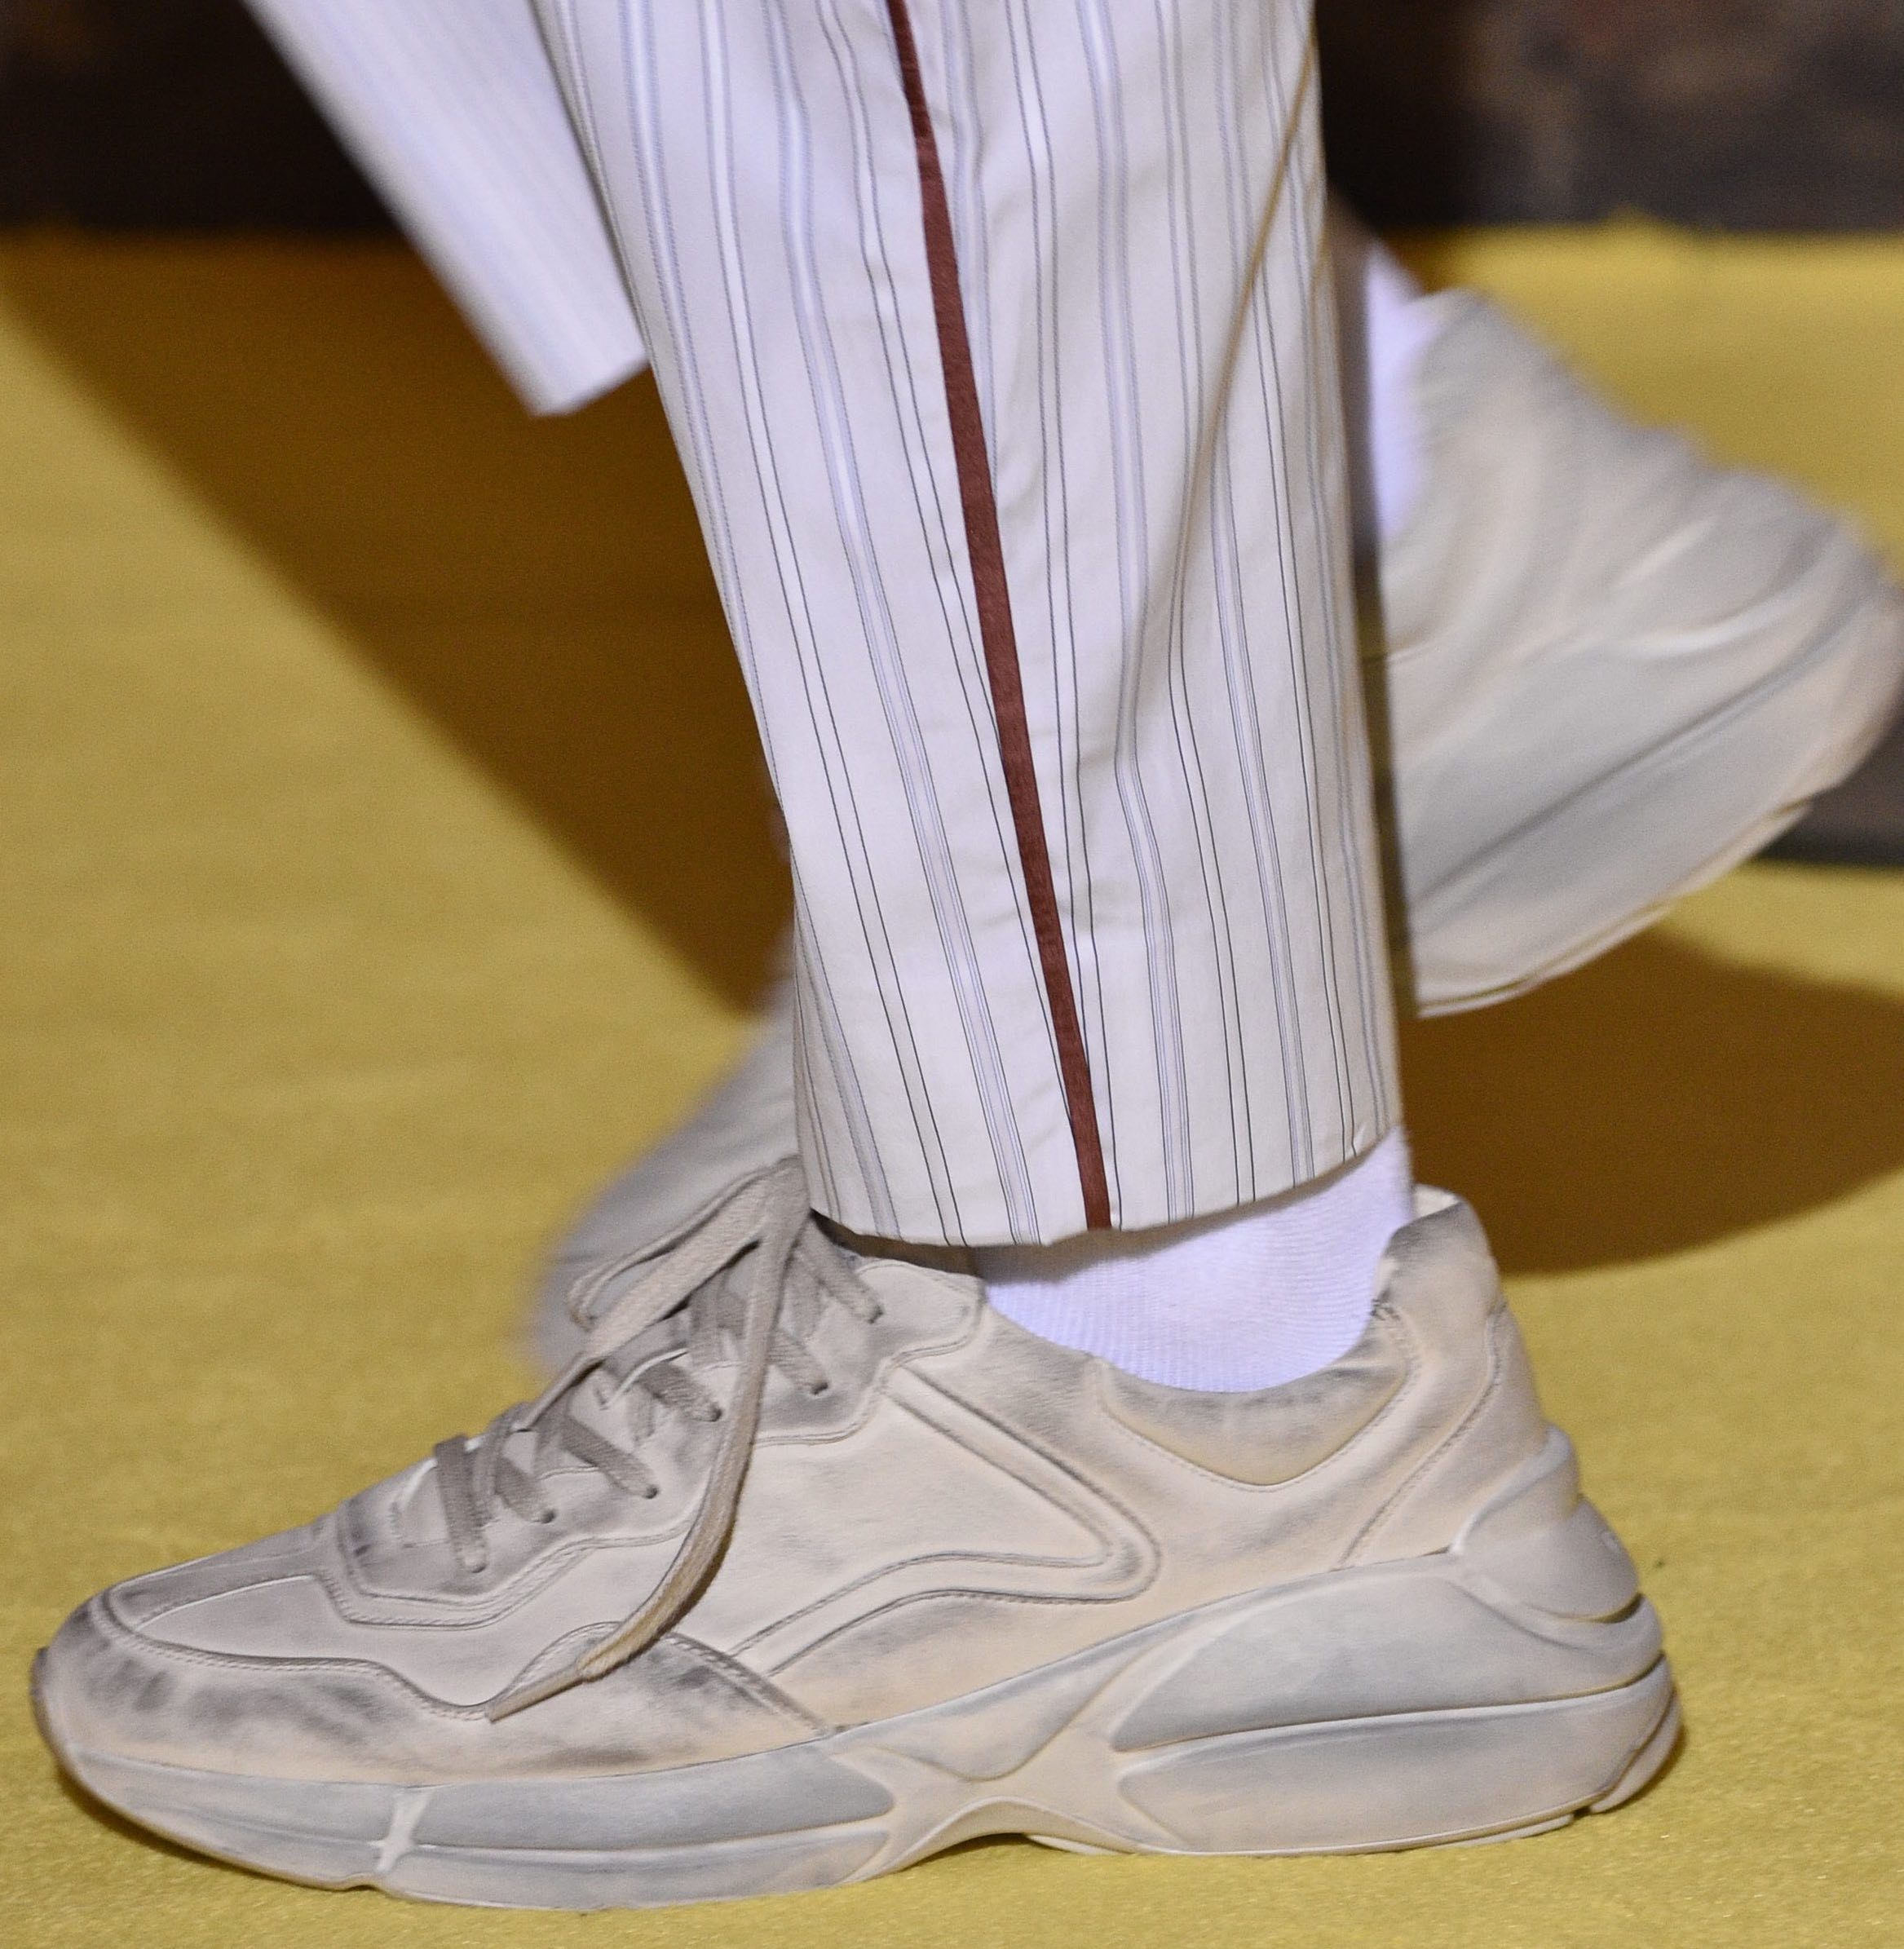 378dcbc7bf why designers are sending dirty sneakers down the runway - i-D